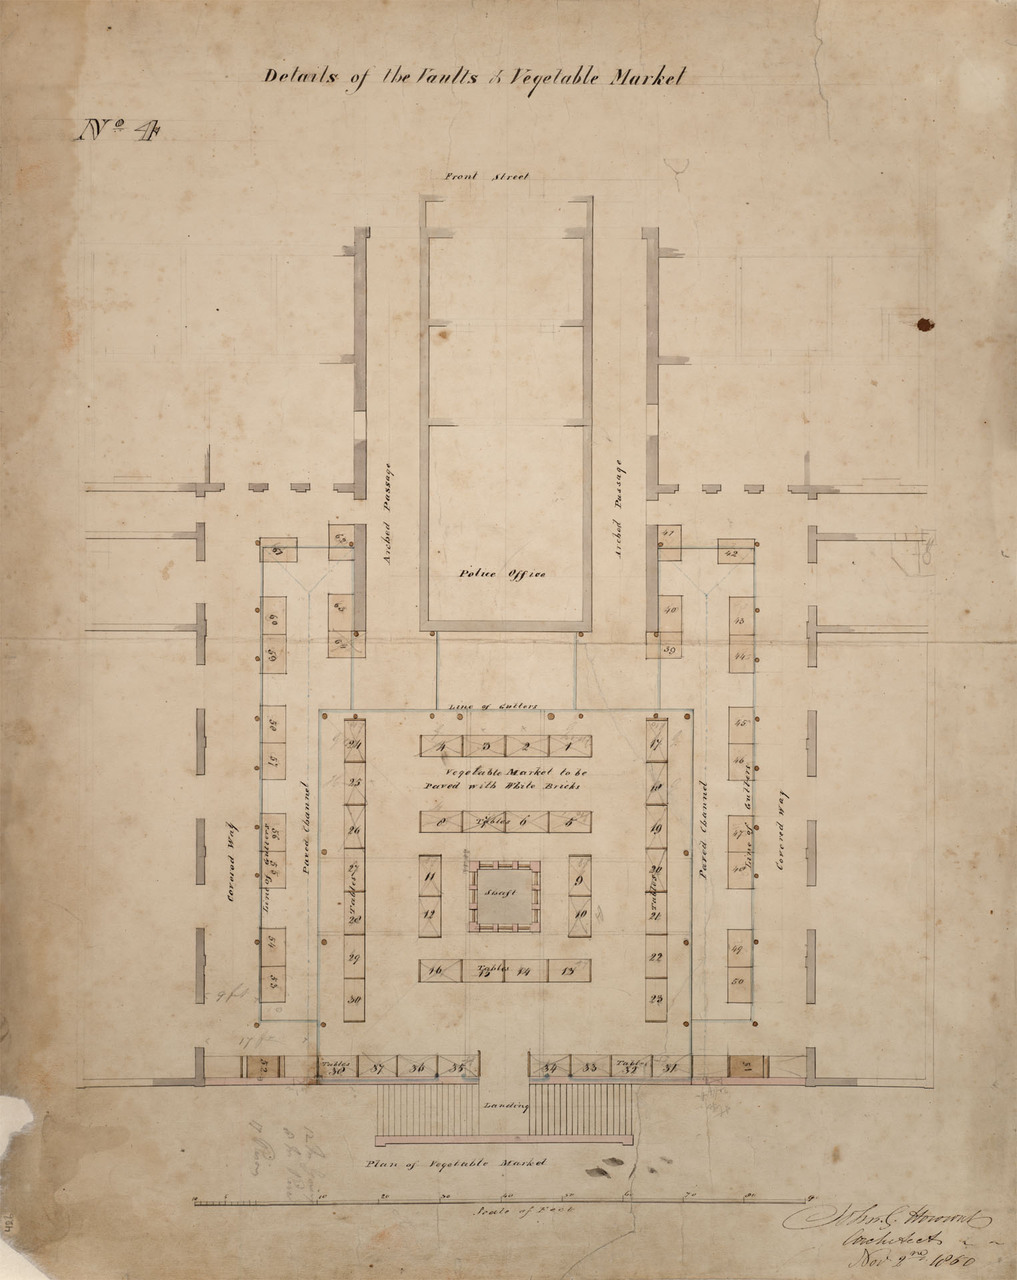 Plan of details of the vaults & vegetable market